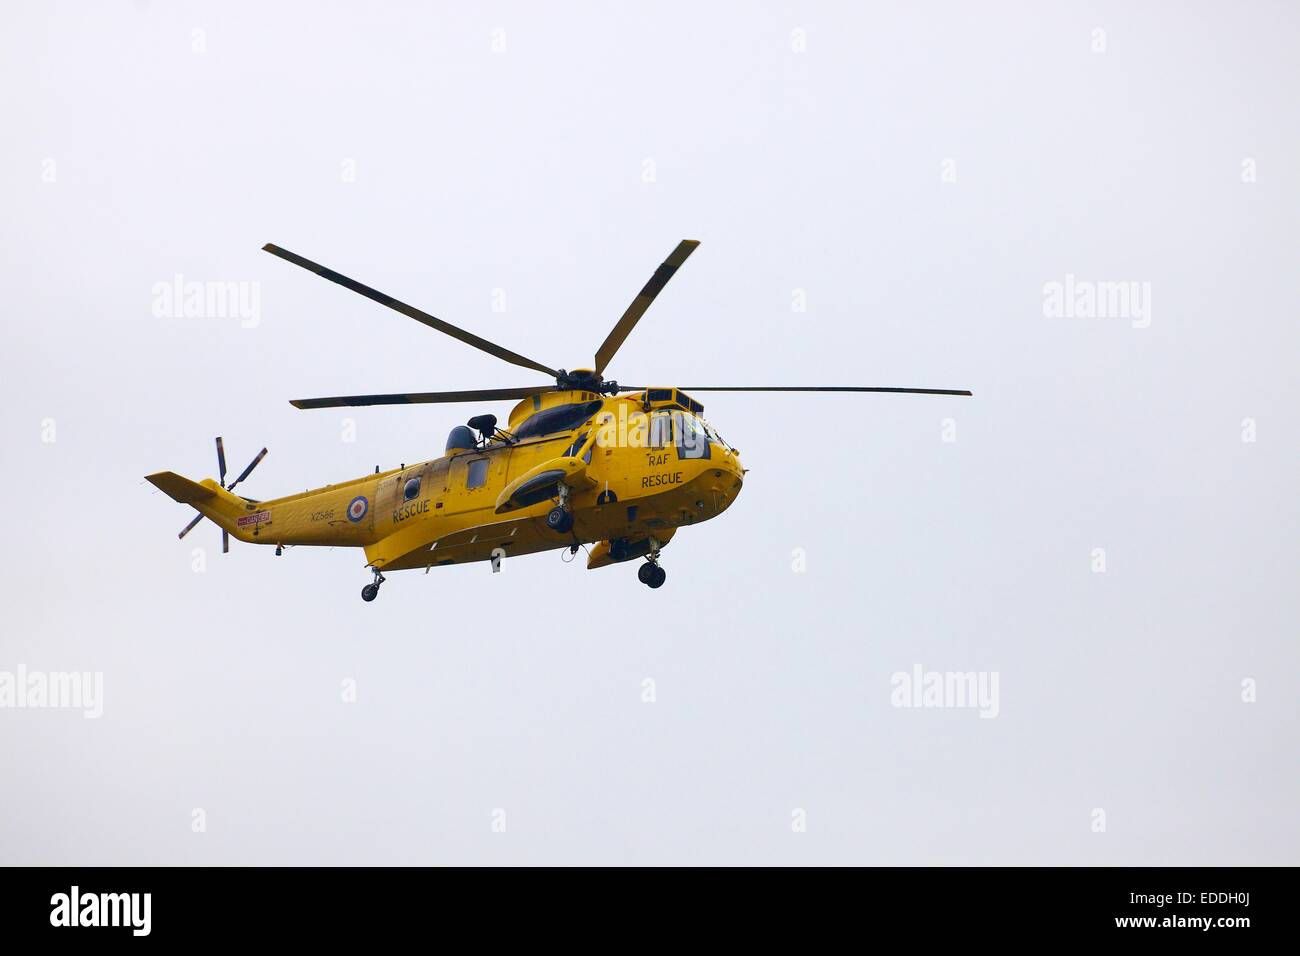 Royal Air Force search and rescue Westland Sea King helicopter. - Stock Image